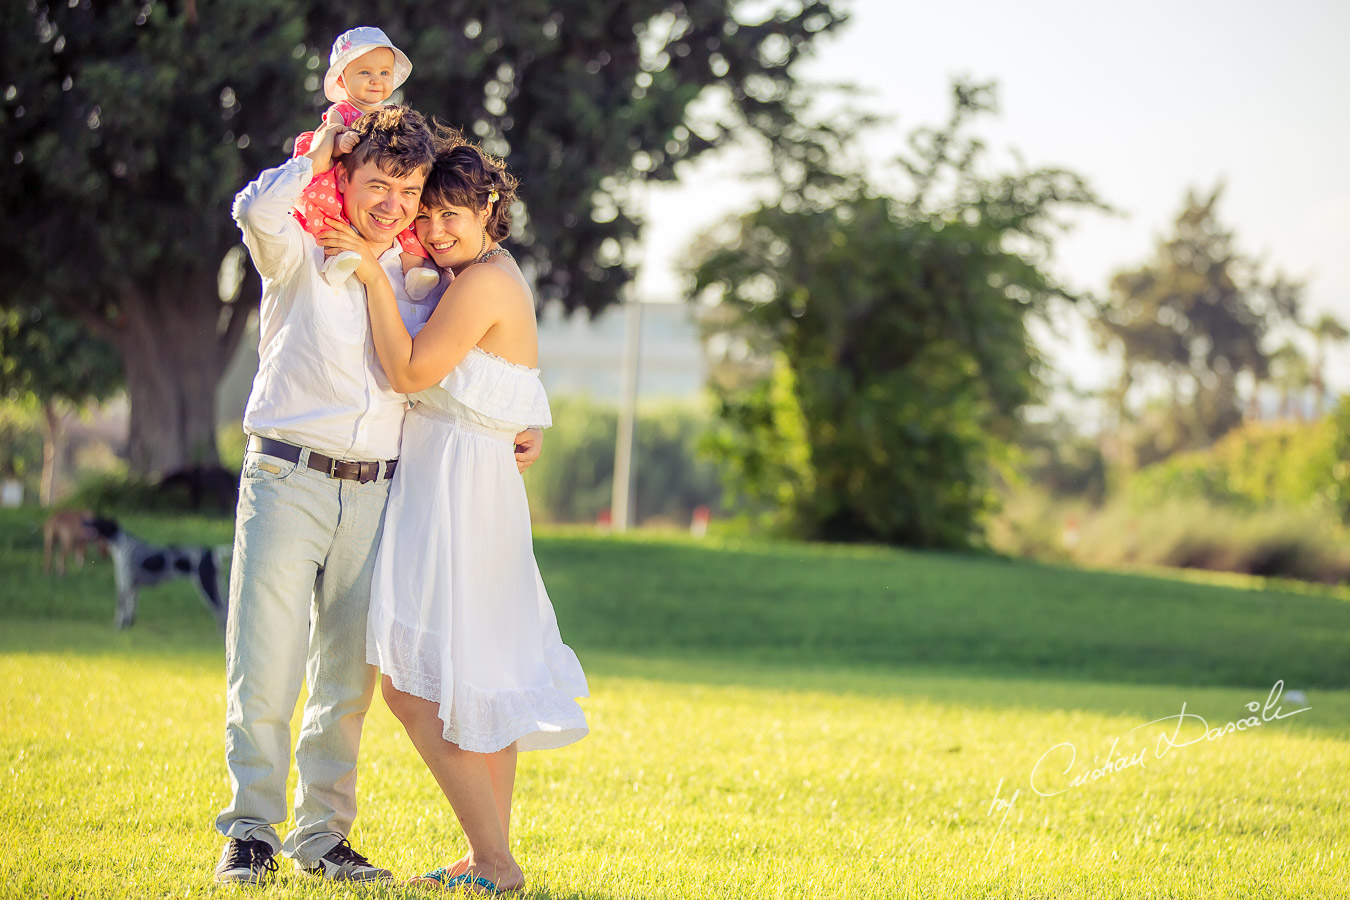 Family Photography in Limassol - Val, Val & Sofia-Aida 14